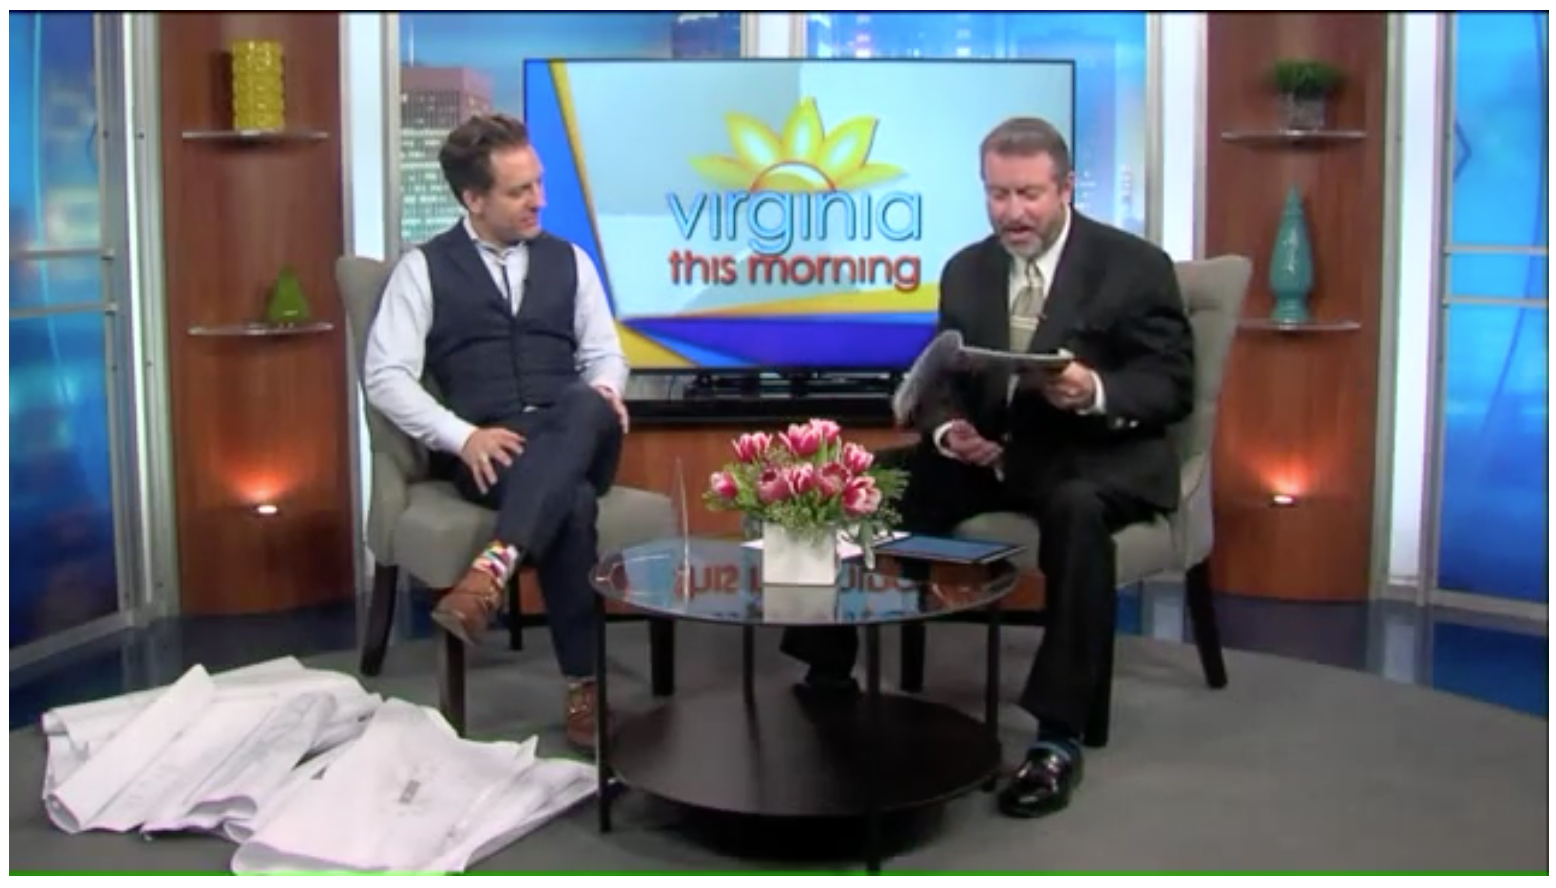 "Watch our segment on WTVR Virginia This Morning ""Follow the Tesauro family on the journey to their dream home"" - WTVR - 2/3/2016"